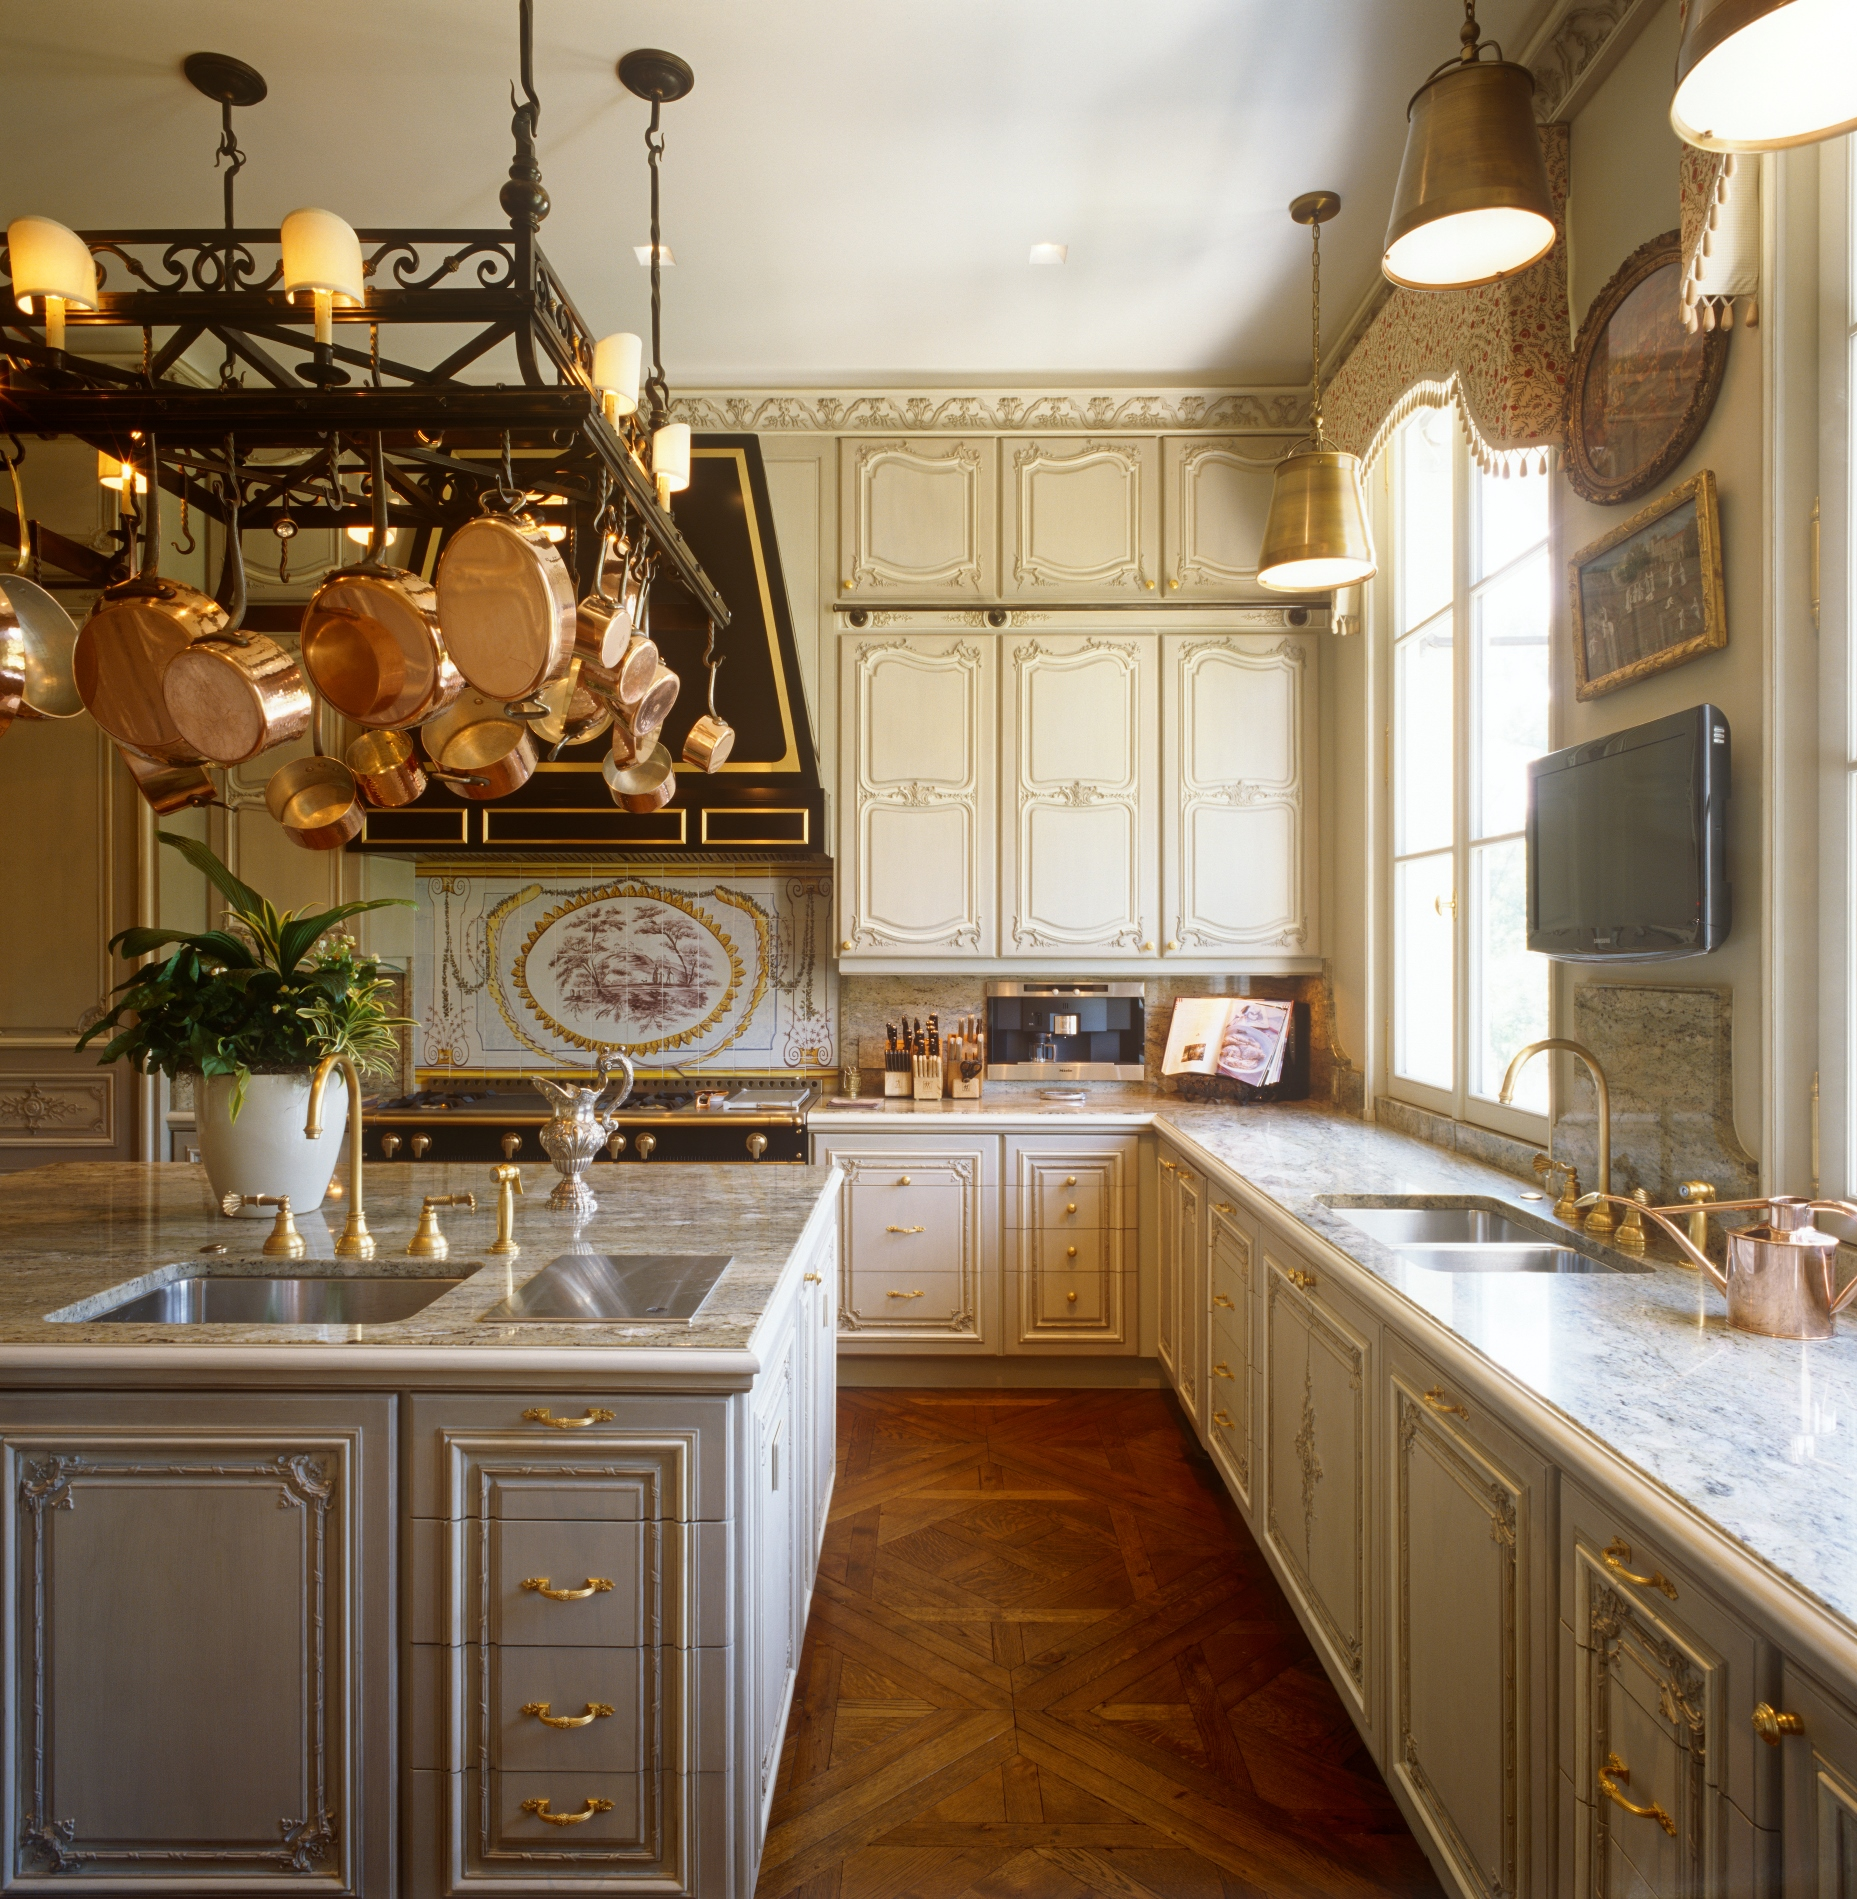 antiques-filled homebrian j. mccarthy | incollect